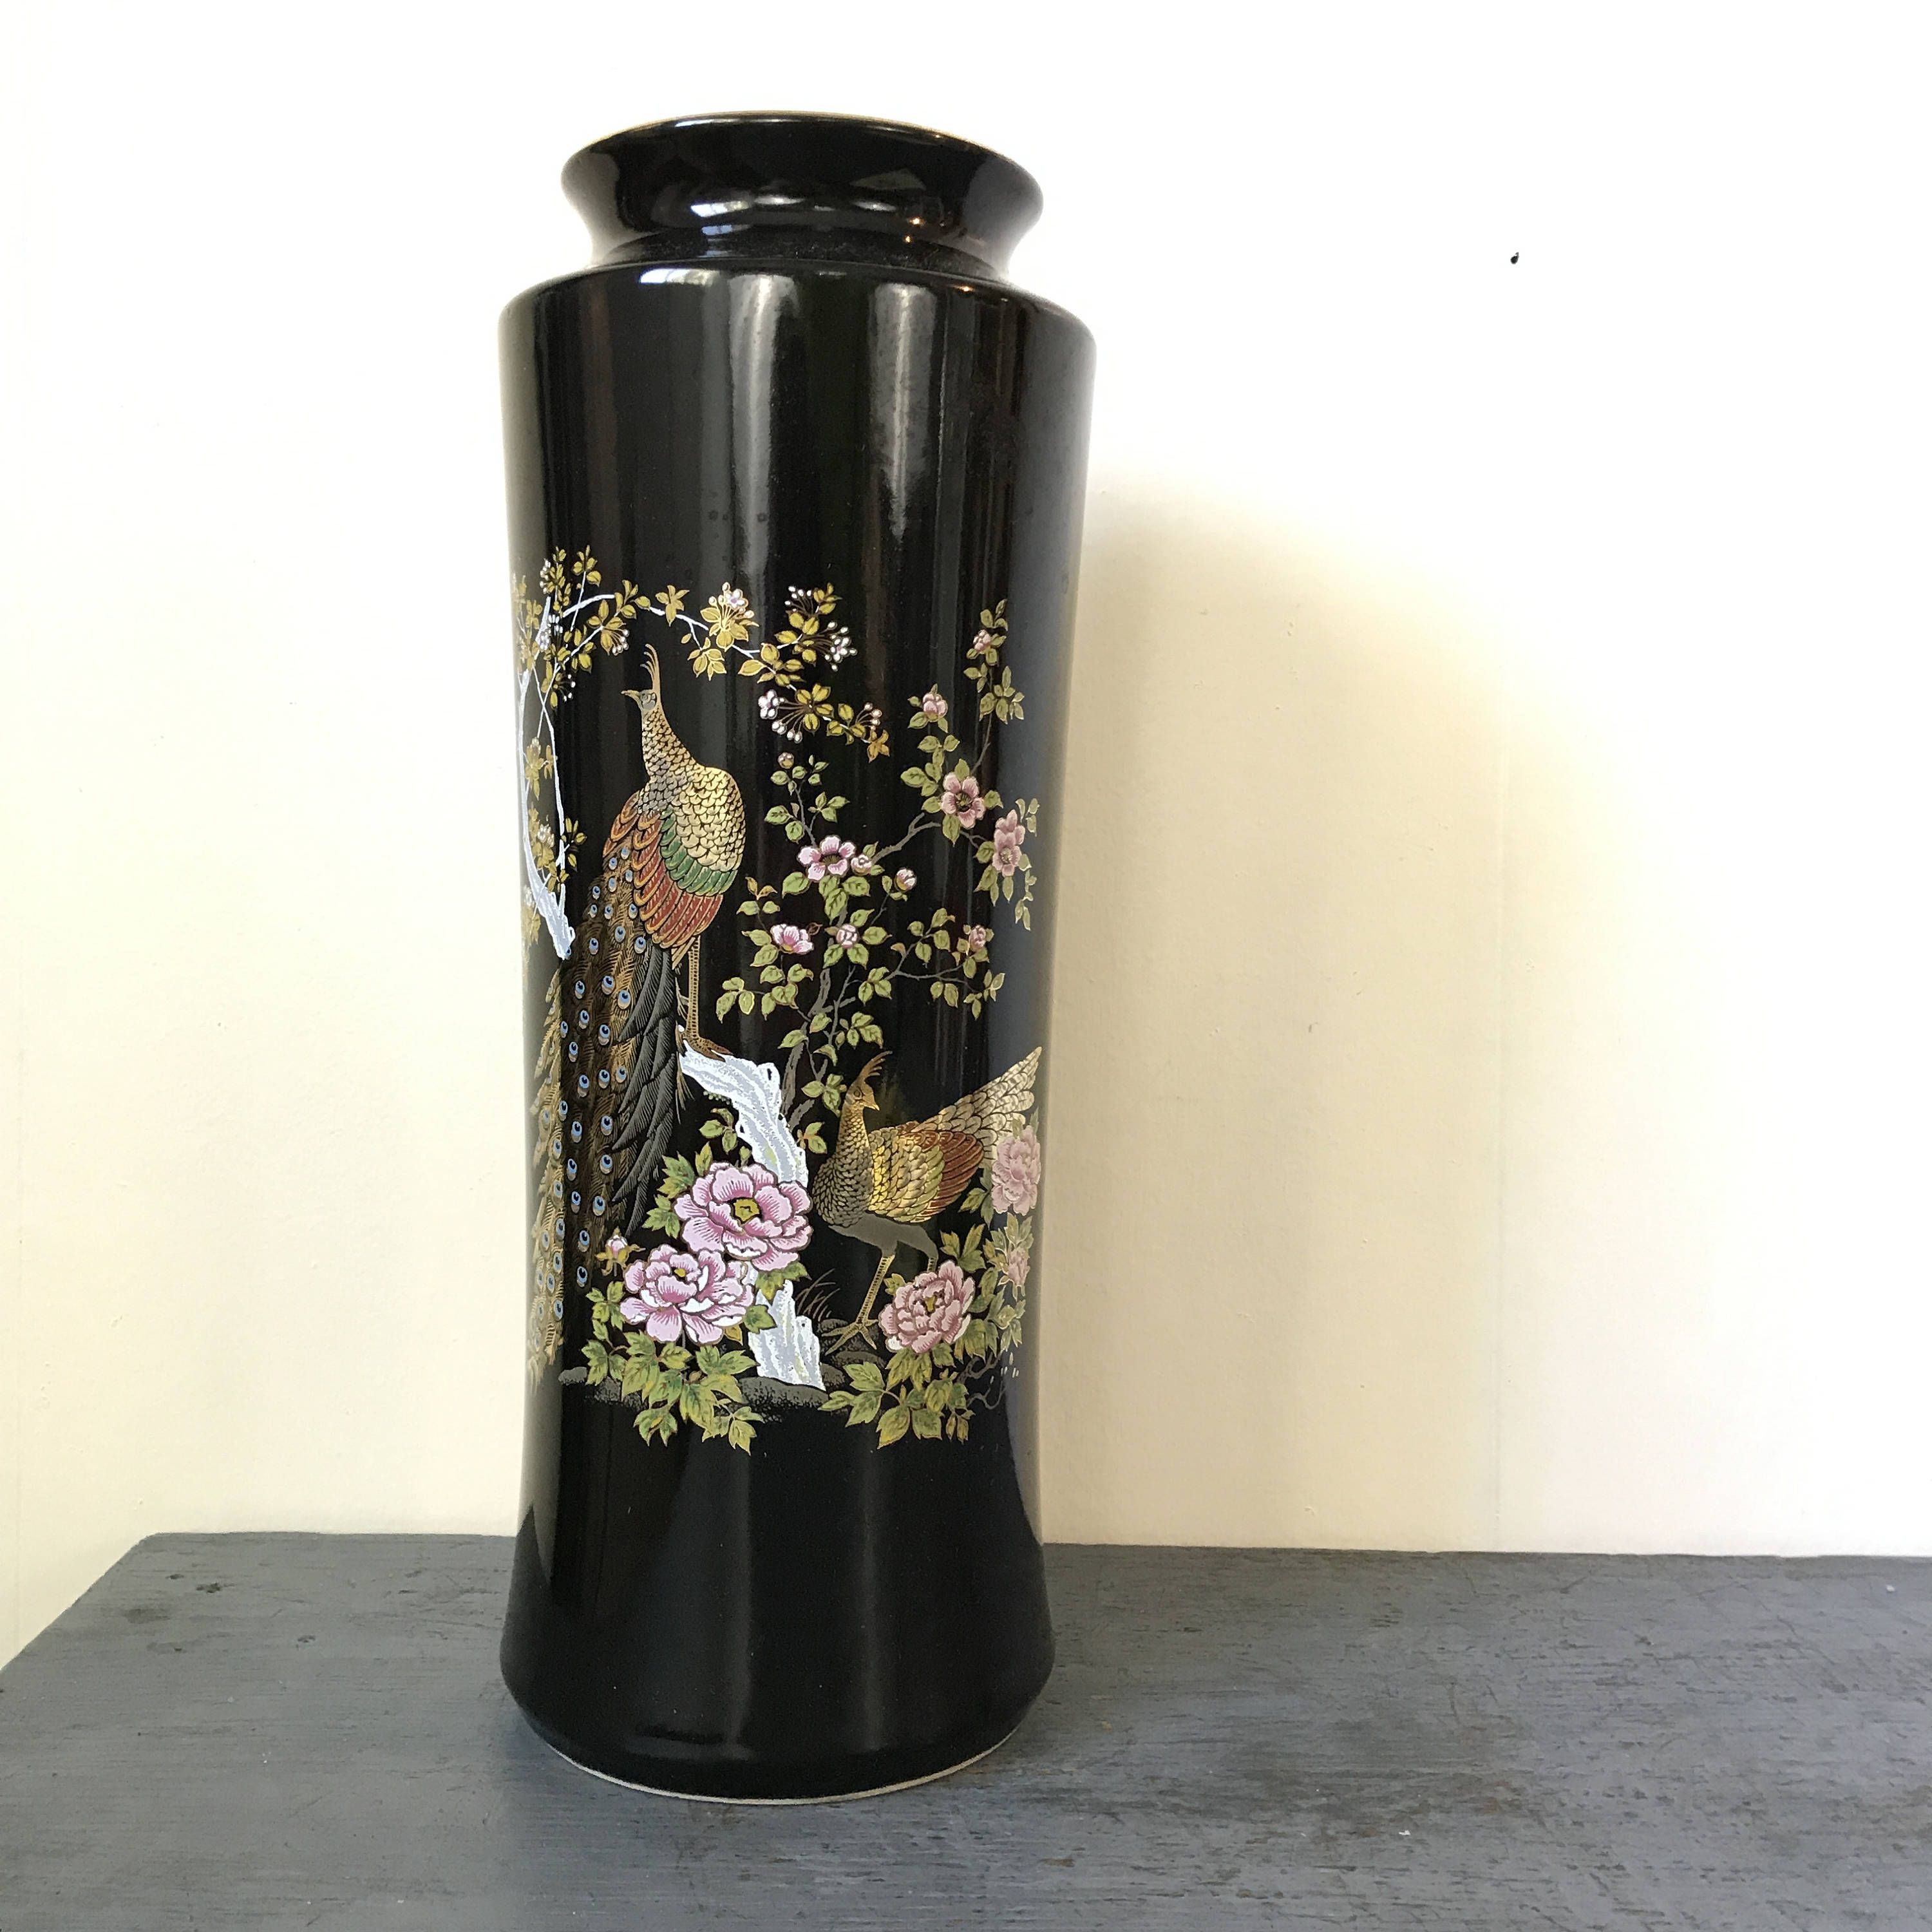 japanese ceramic vase of black ceramic vase photograph vases white square vasei 0d plastic within black ceramic vase stock vintage ceramic vase japanese peacock floral asian chinoiserie of black ceramic vase